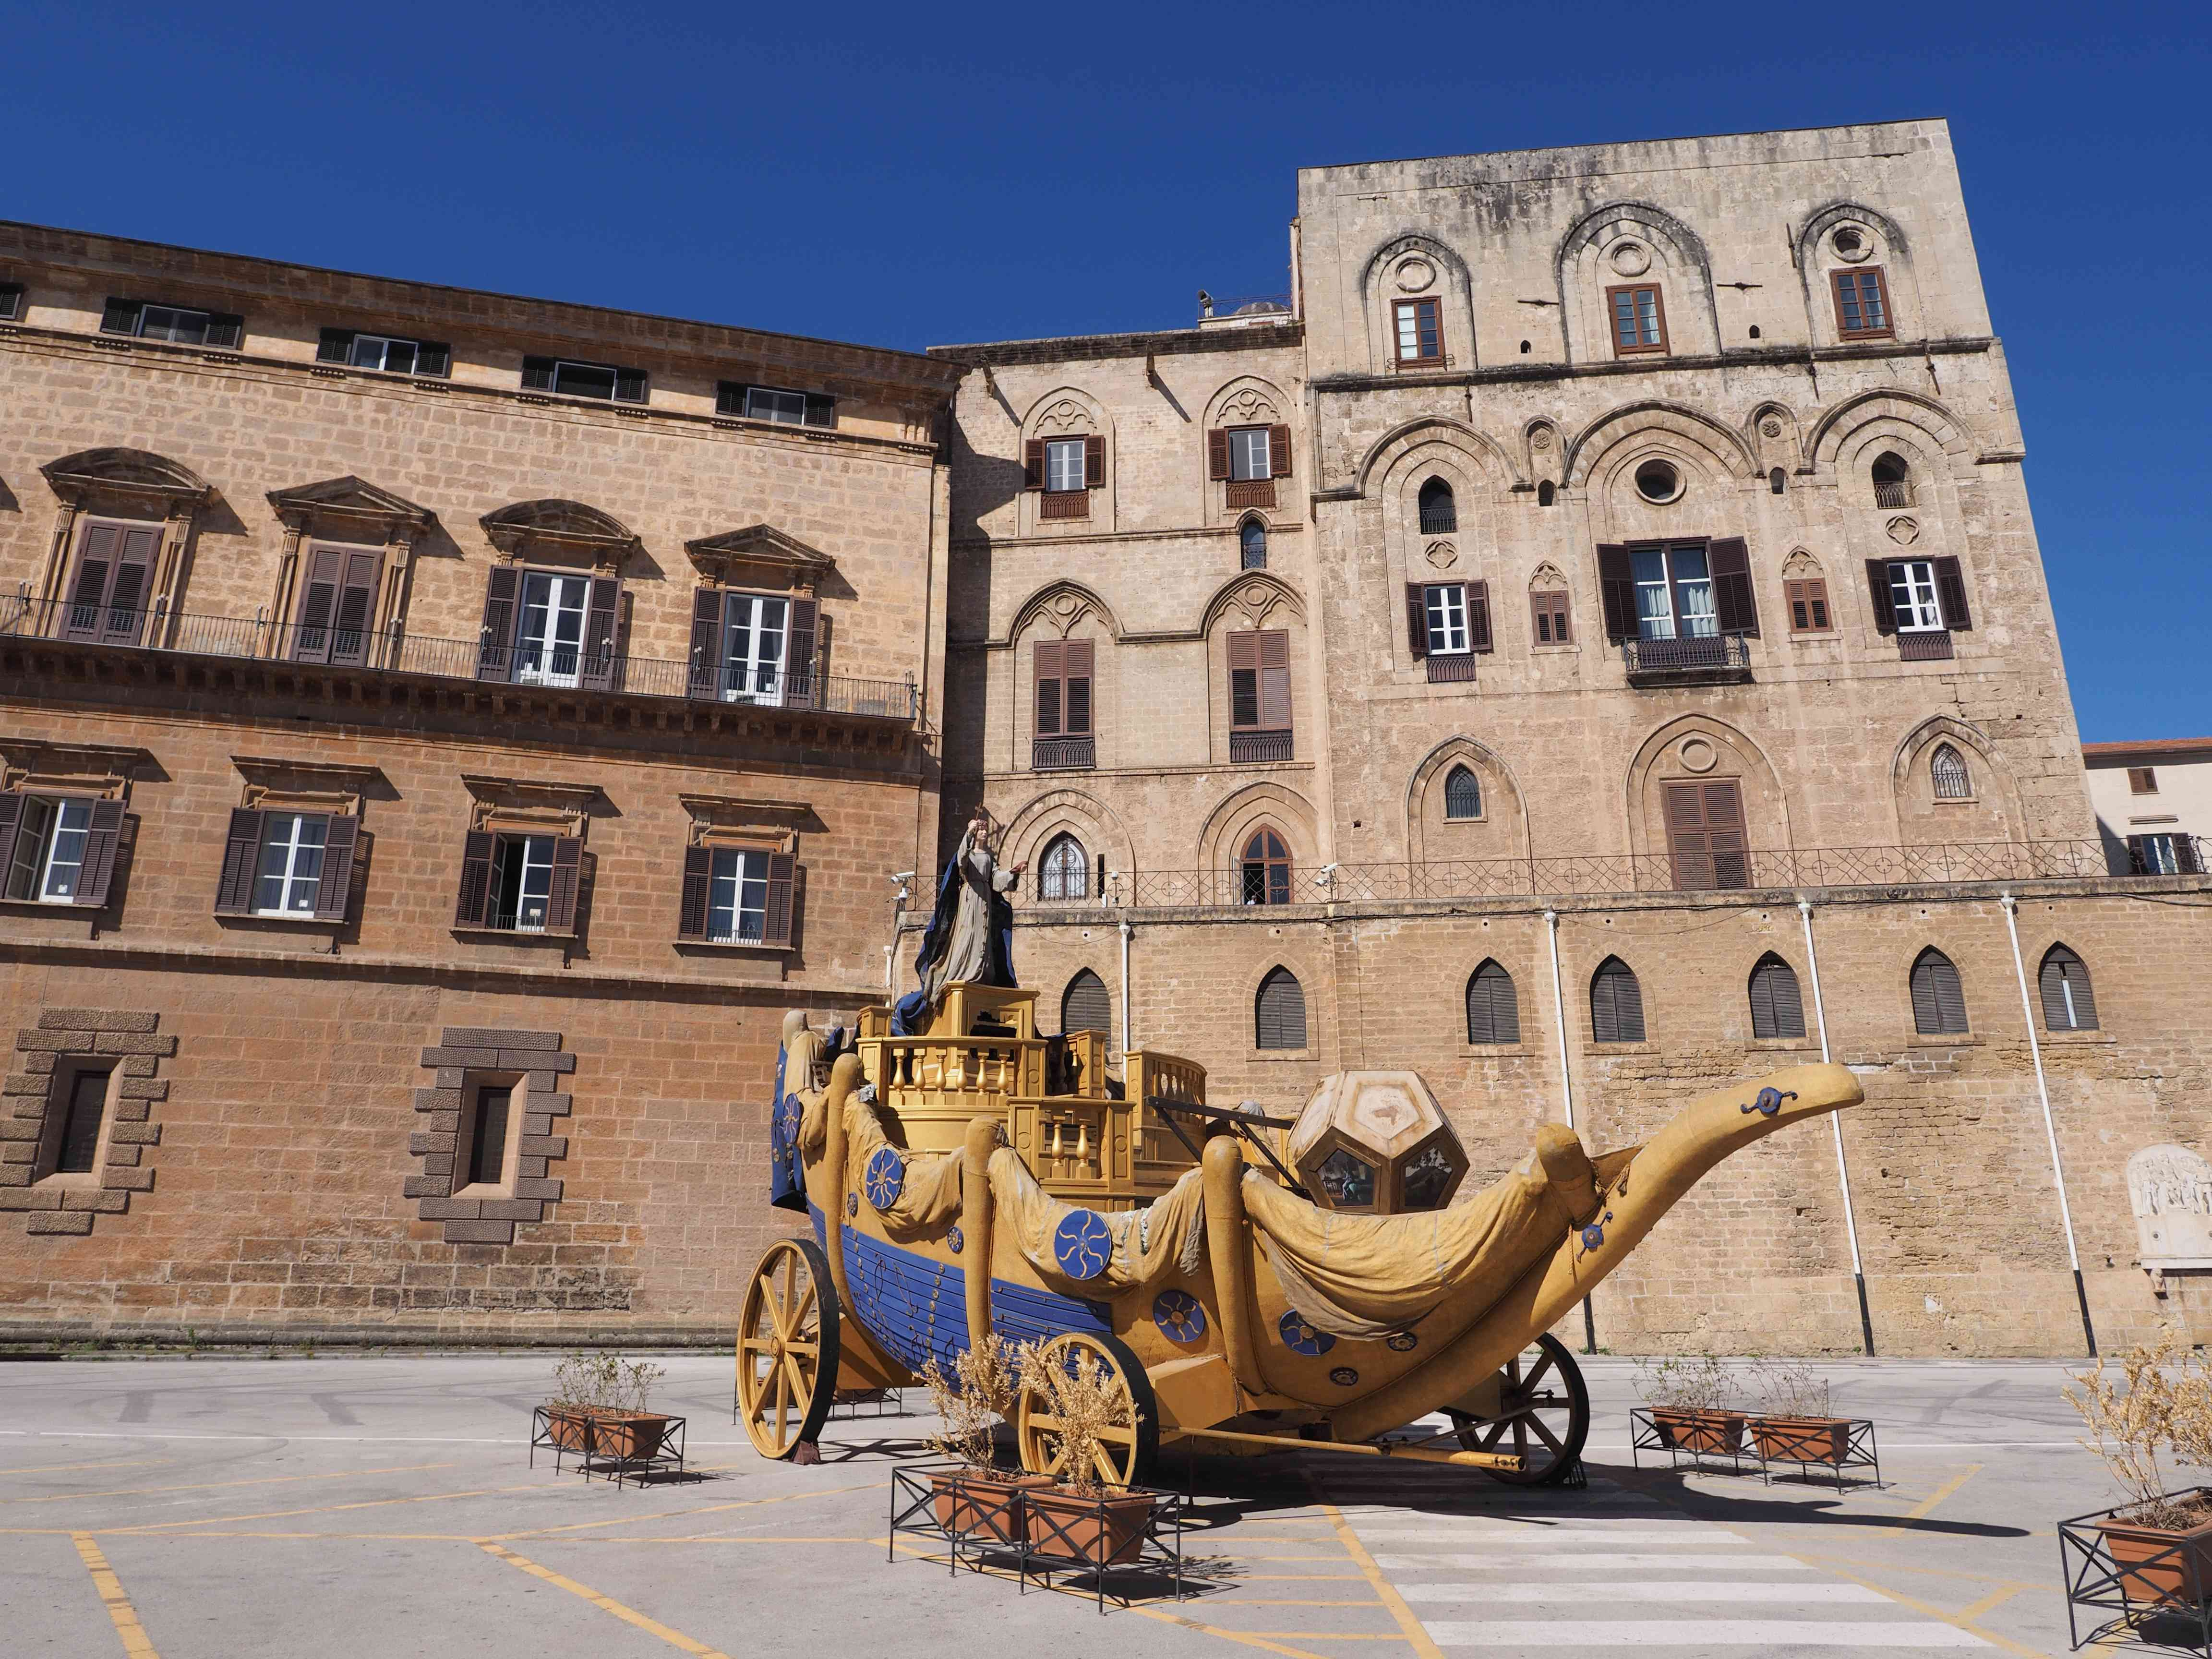 Carriage on the square behind Norman Palace, Palermo